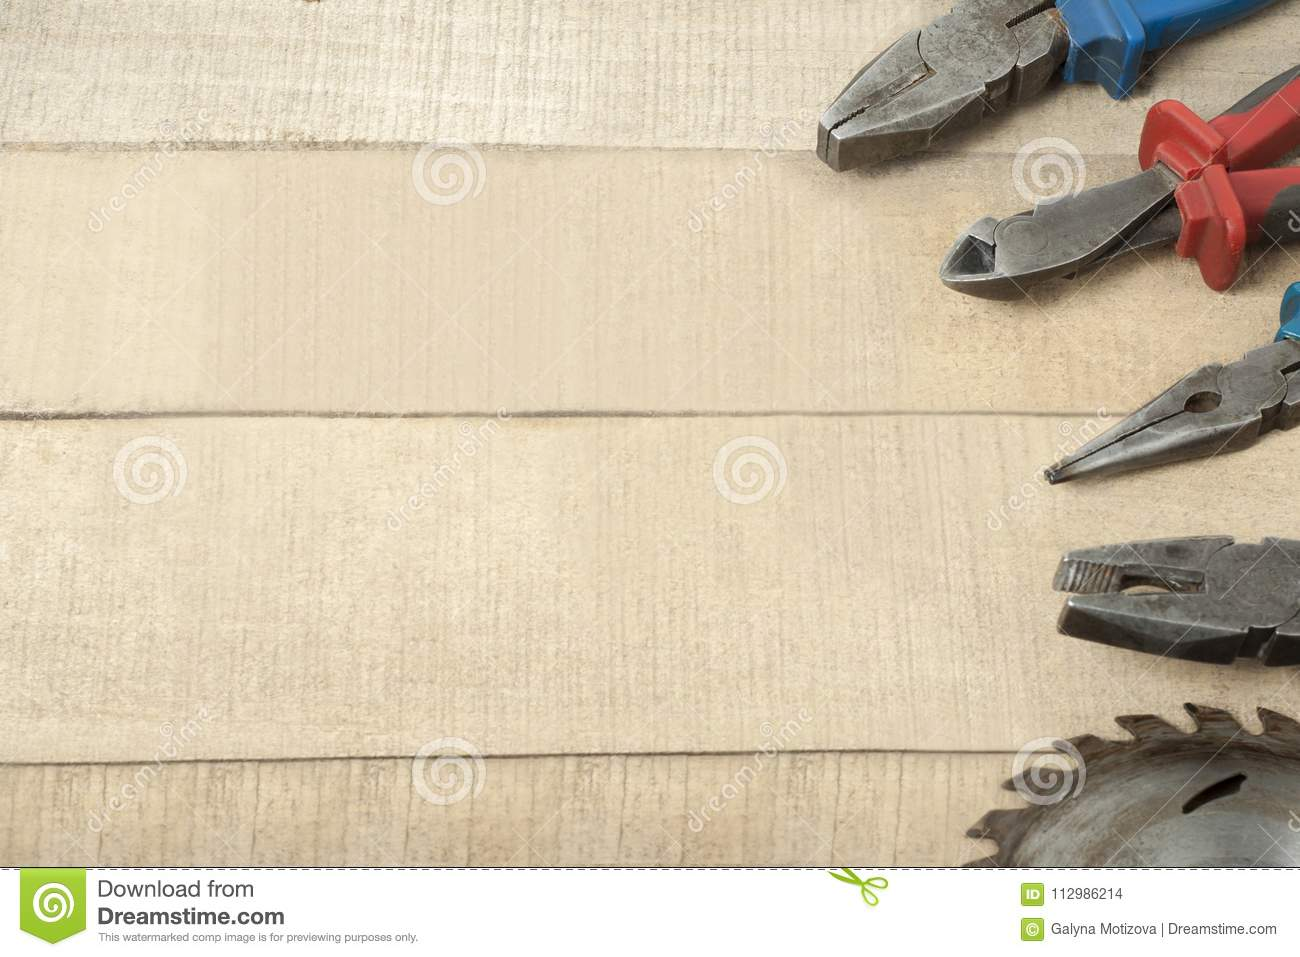 Construction tools on wooden background.Copy space for text.